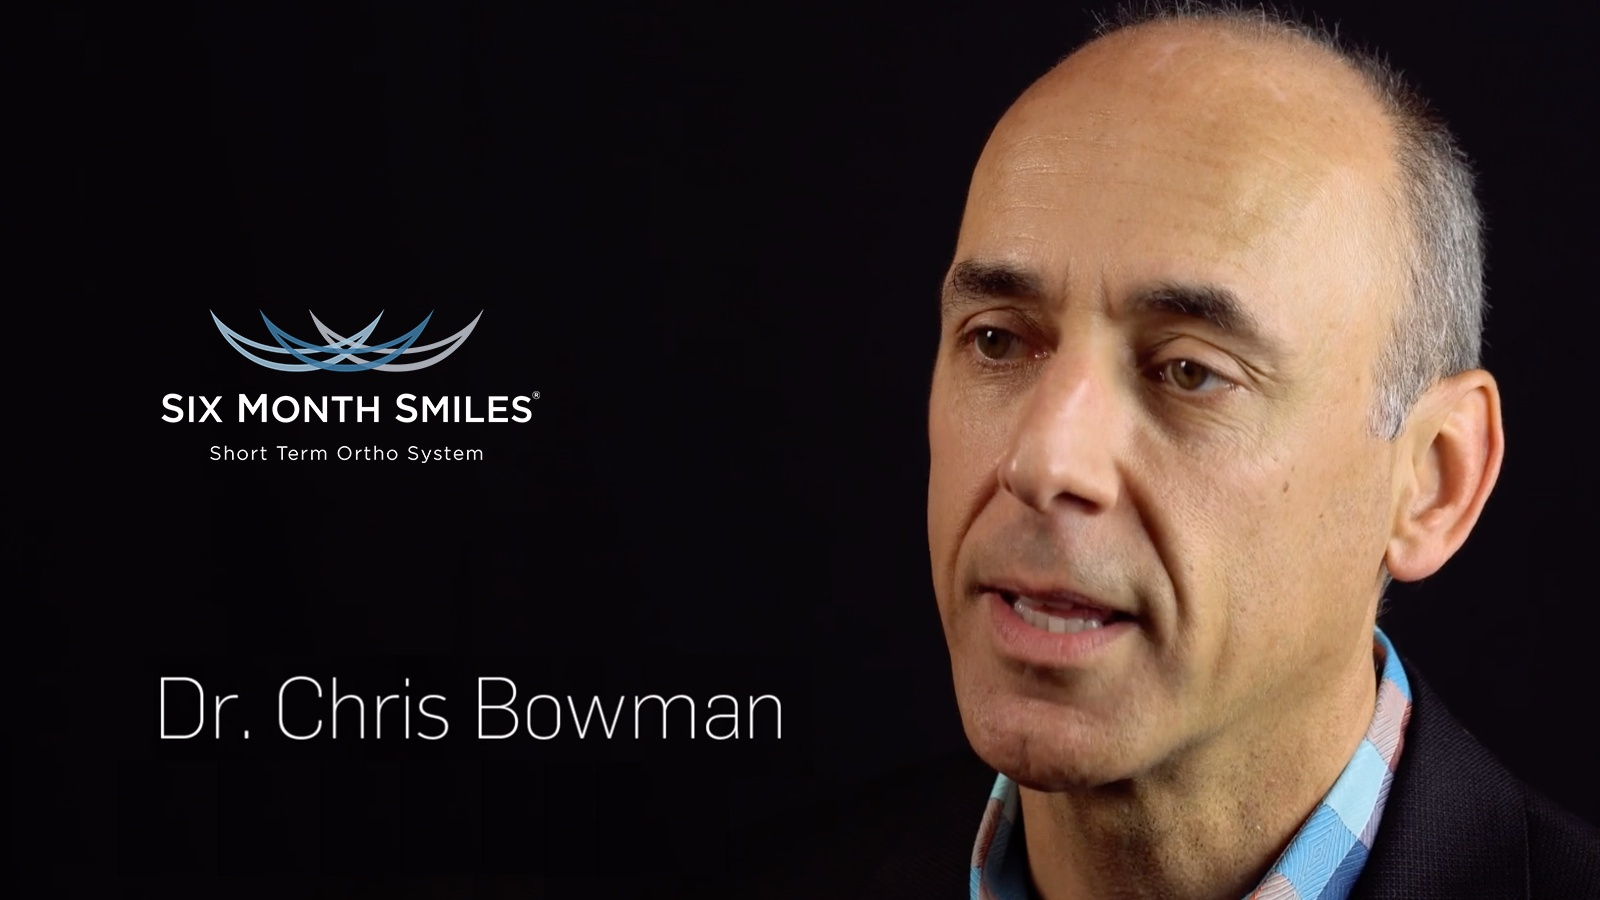 Dr. Chris Bowman - Six Month Smiles Clinical Instructor